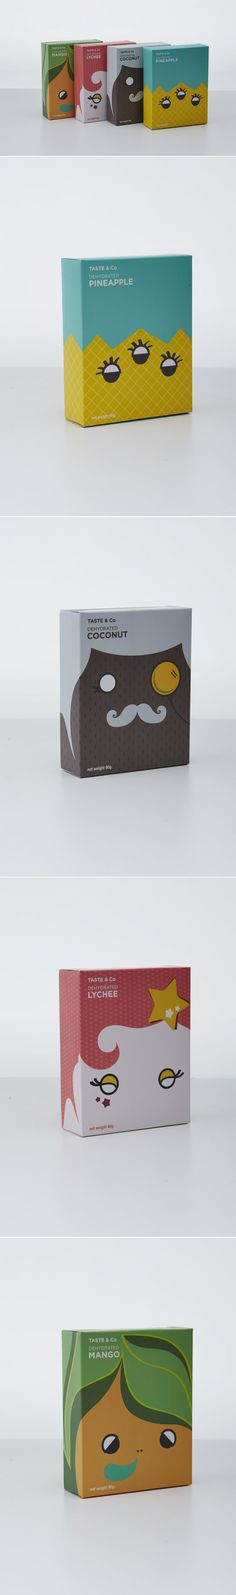 Check Out This Adorable Packaging For Dried Fruits — The Dieline | Packaging & Branding Design & Innovation News